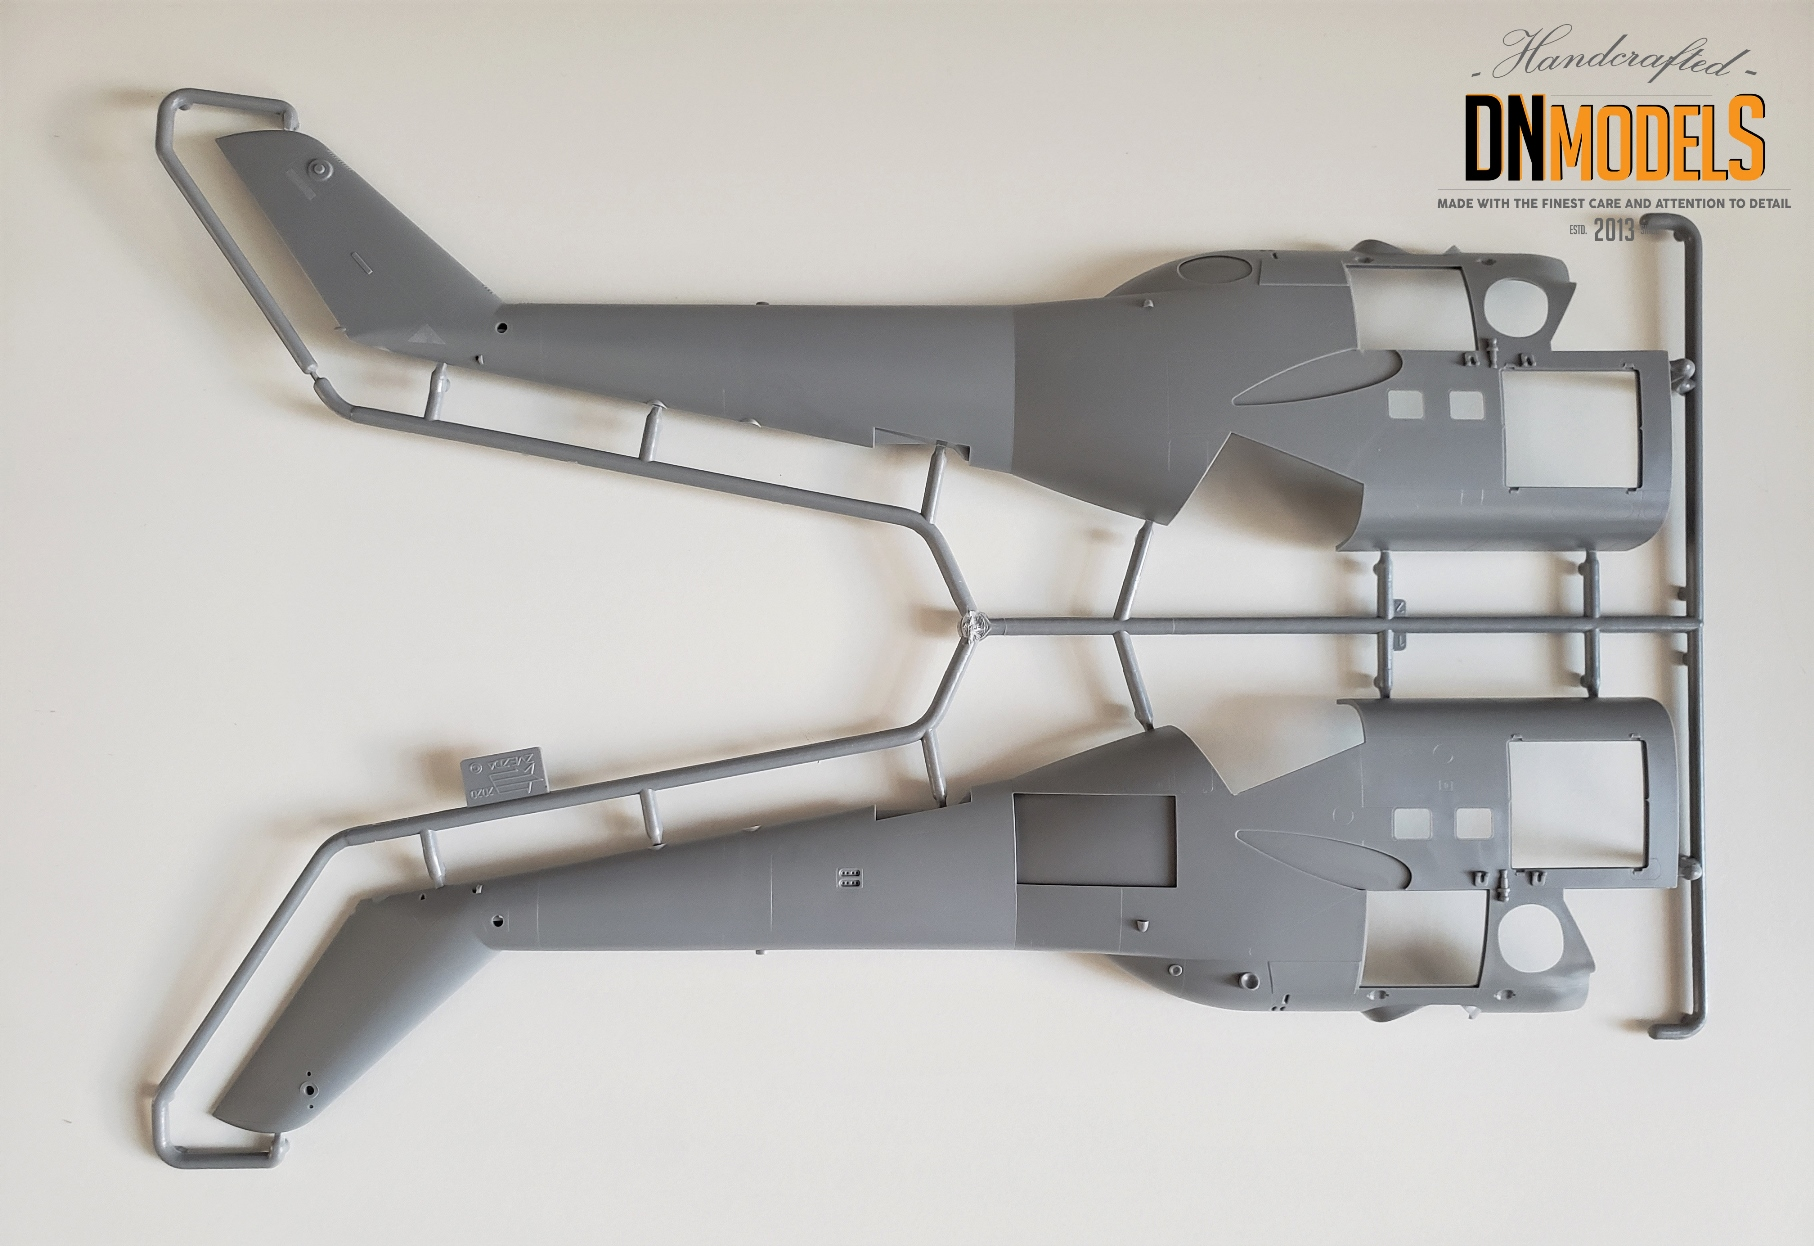 mi24 zvezda in 48th scale review dn models masks for scale models